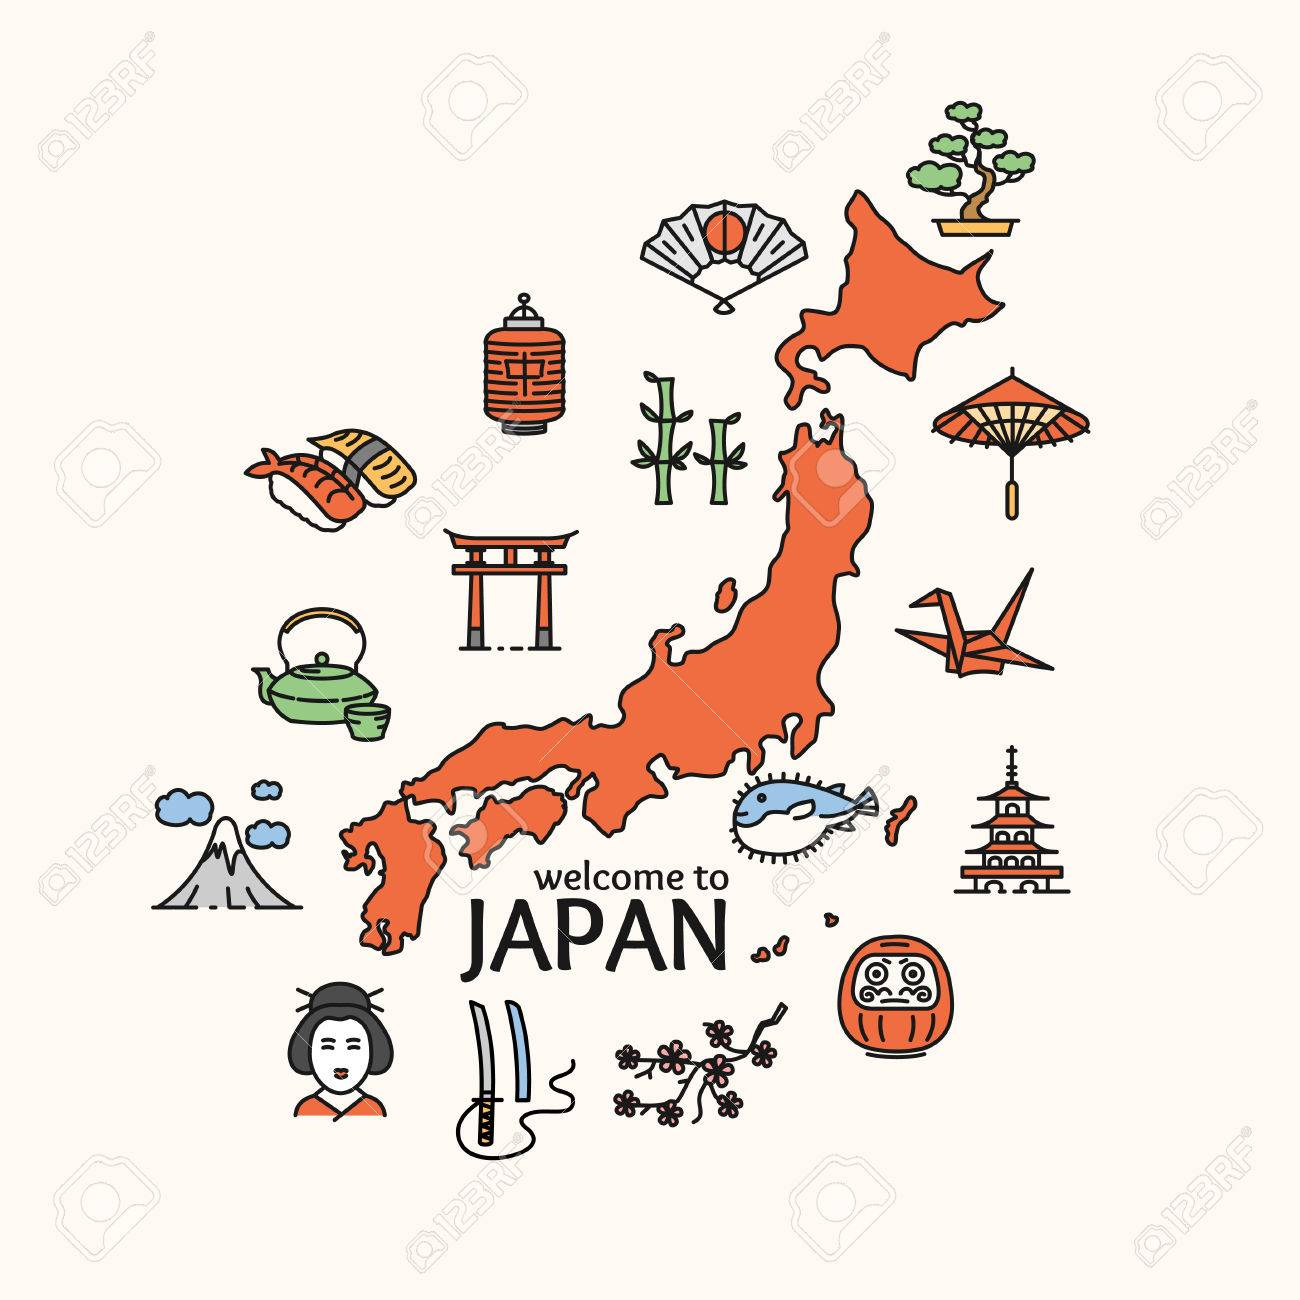 Japan Concept Travel. Map of Country. Poster. Vector illustration - 55548965